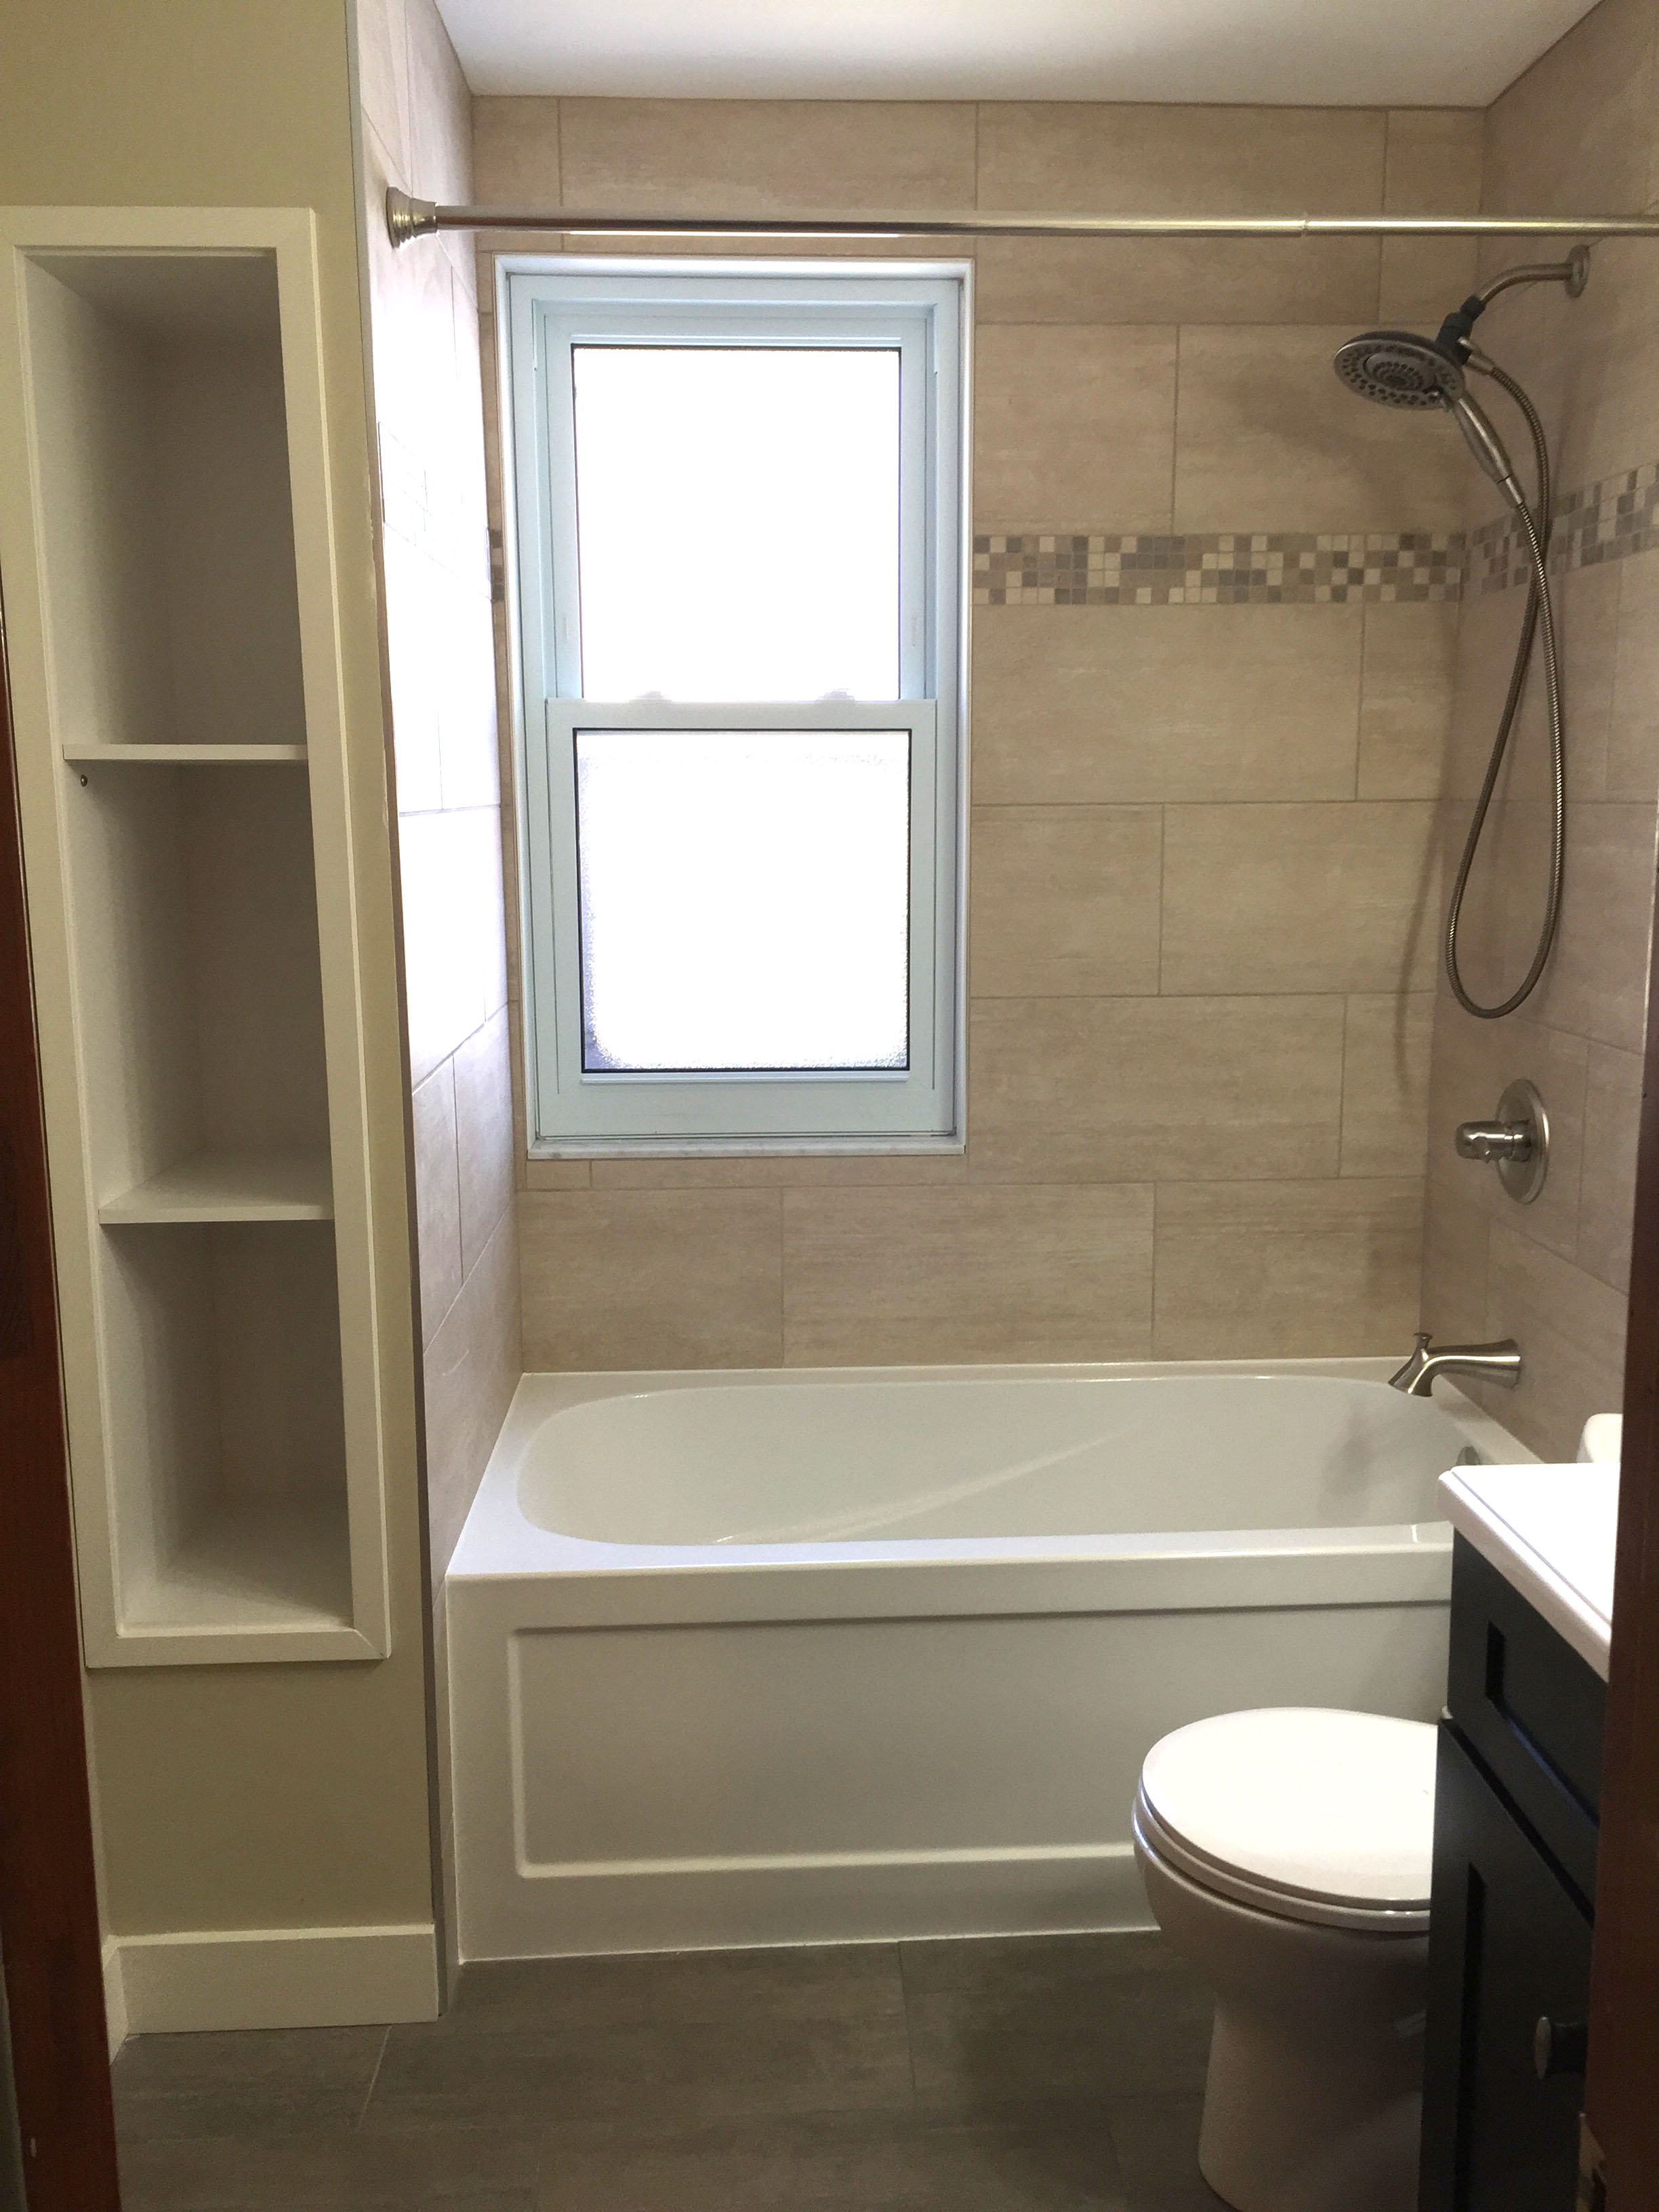 Ridout Bathroom Renovation